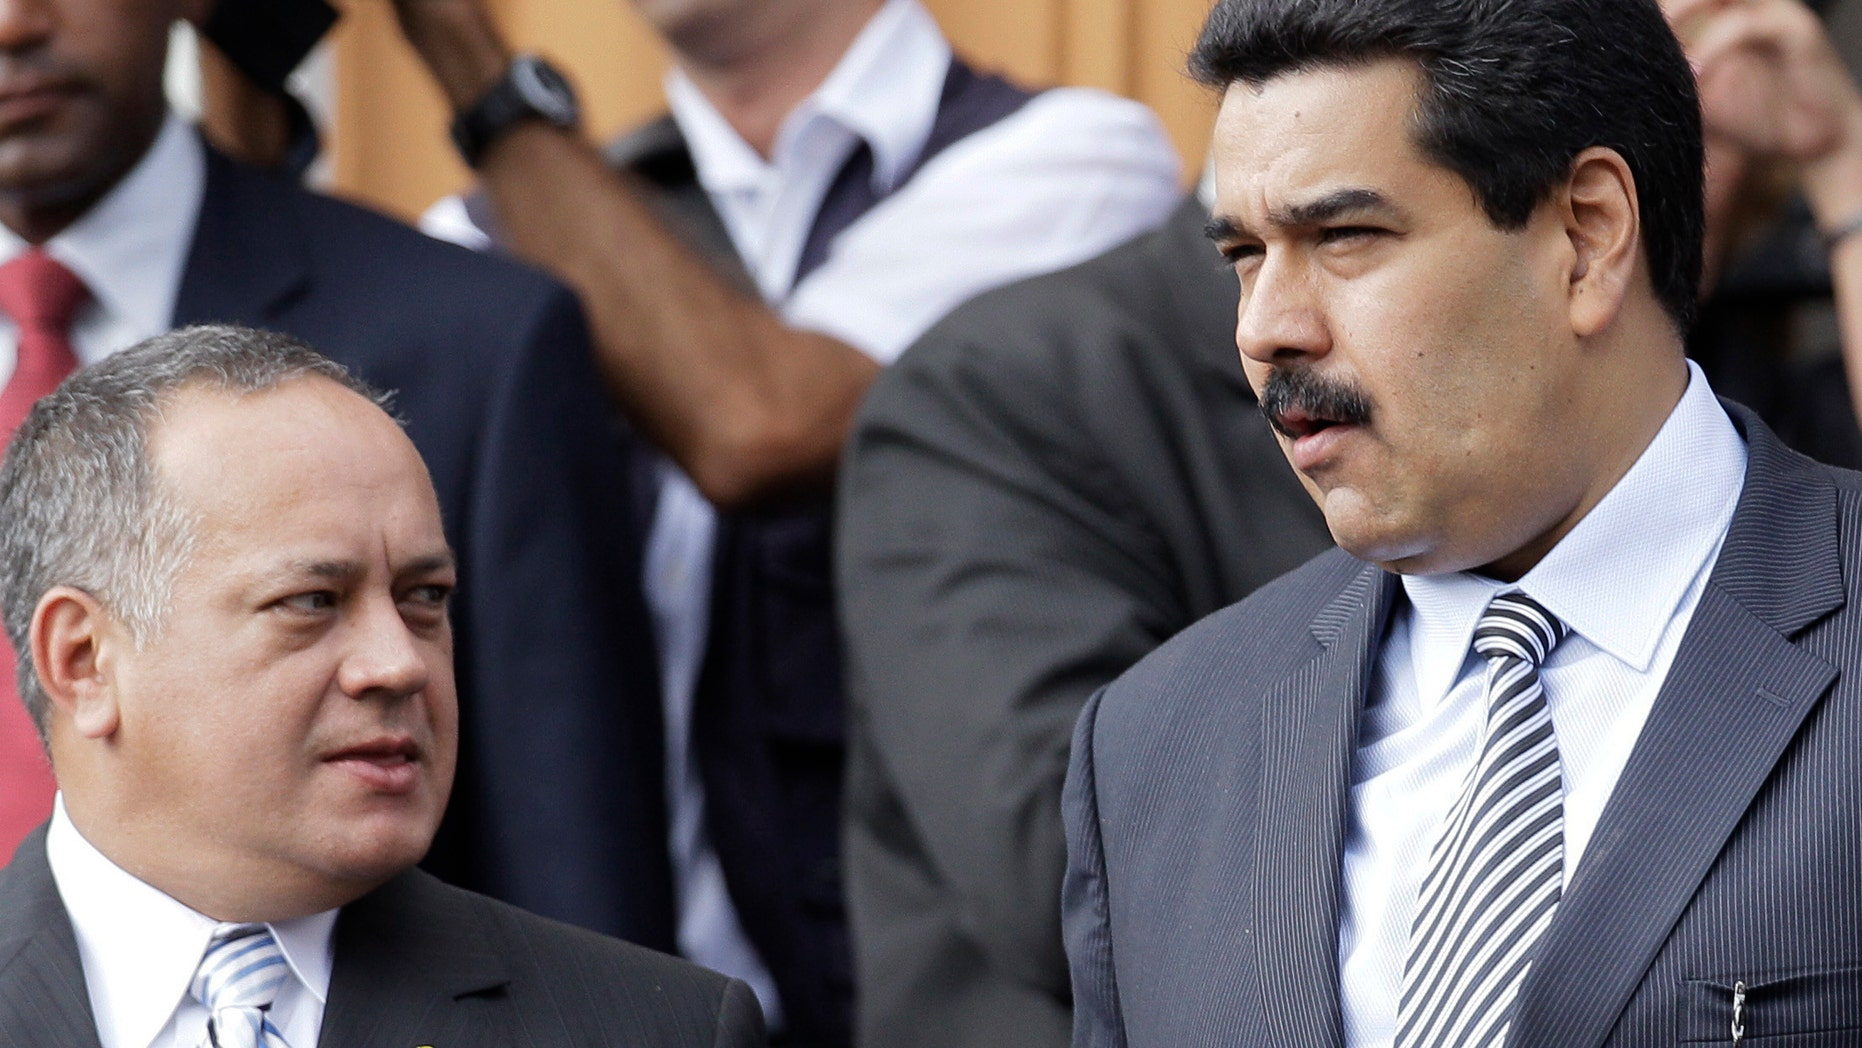 Venezuelan Vice President Nicolas Maduro, right, and President of the National Assembly Diosdado Cabello, attend a ceremony for the 182 anniversary of the death of Simon Bolivar in Caracas, December 17, 2012. (AP Photo / Ariana Cubillos)